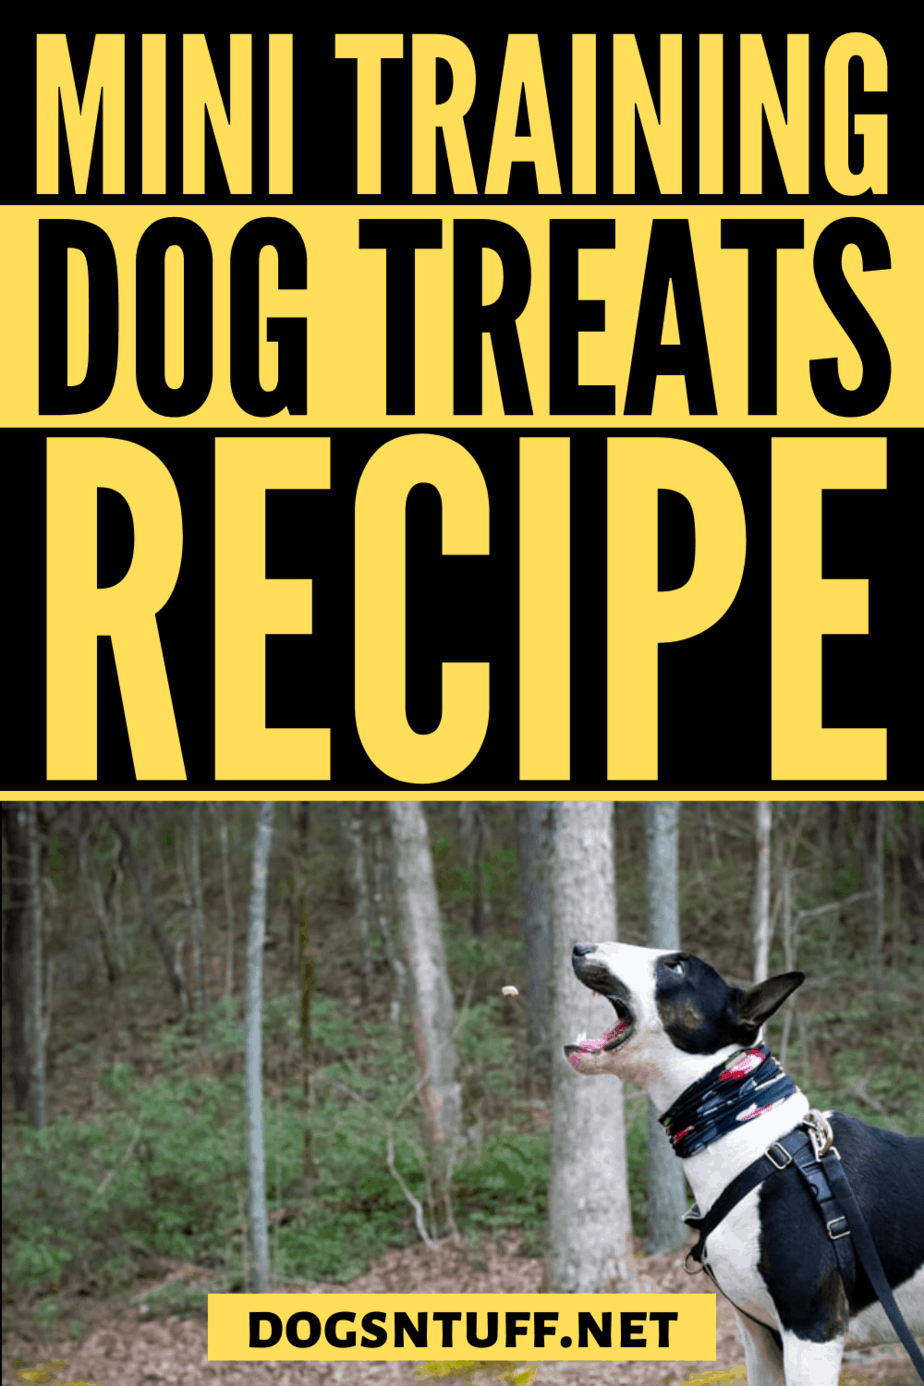 How to make DIY Dog Training Mini Treats?